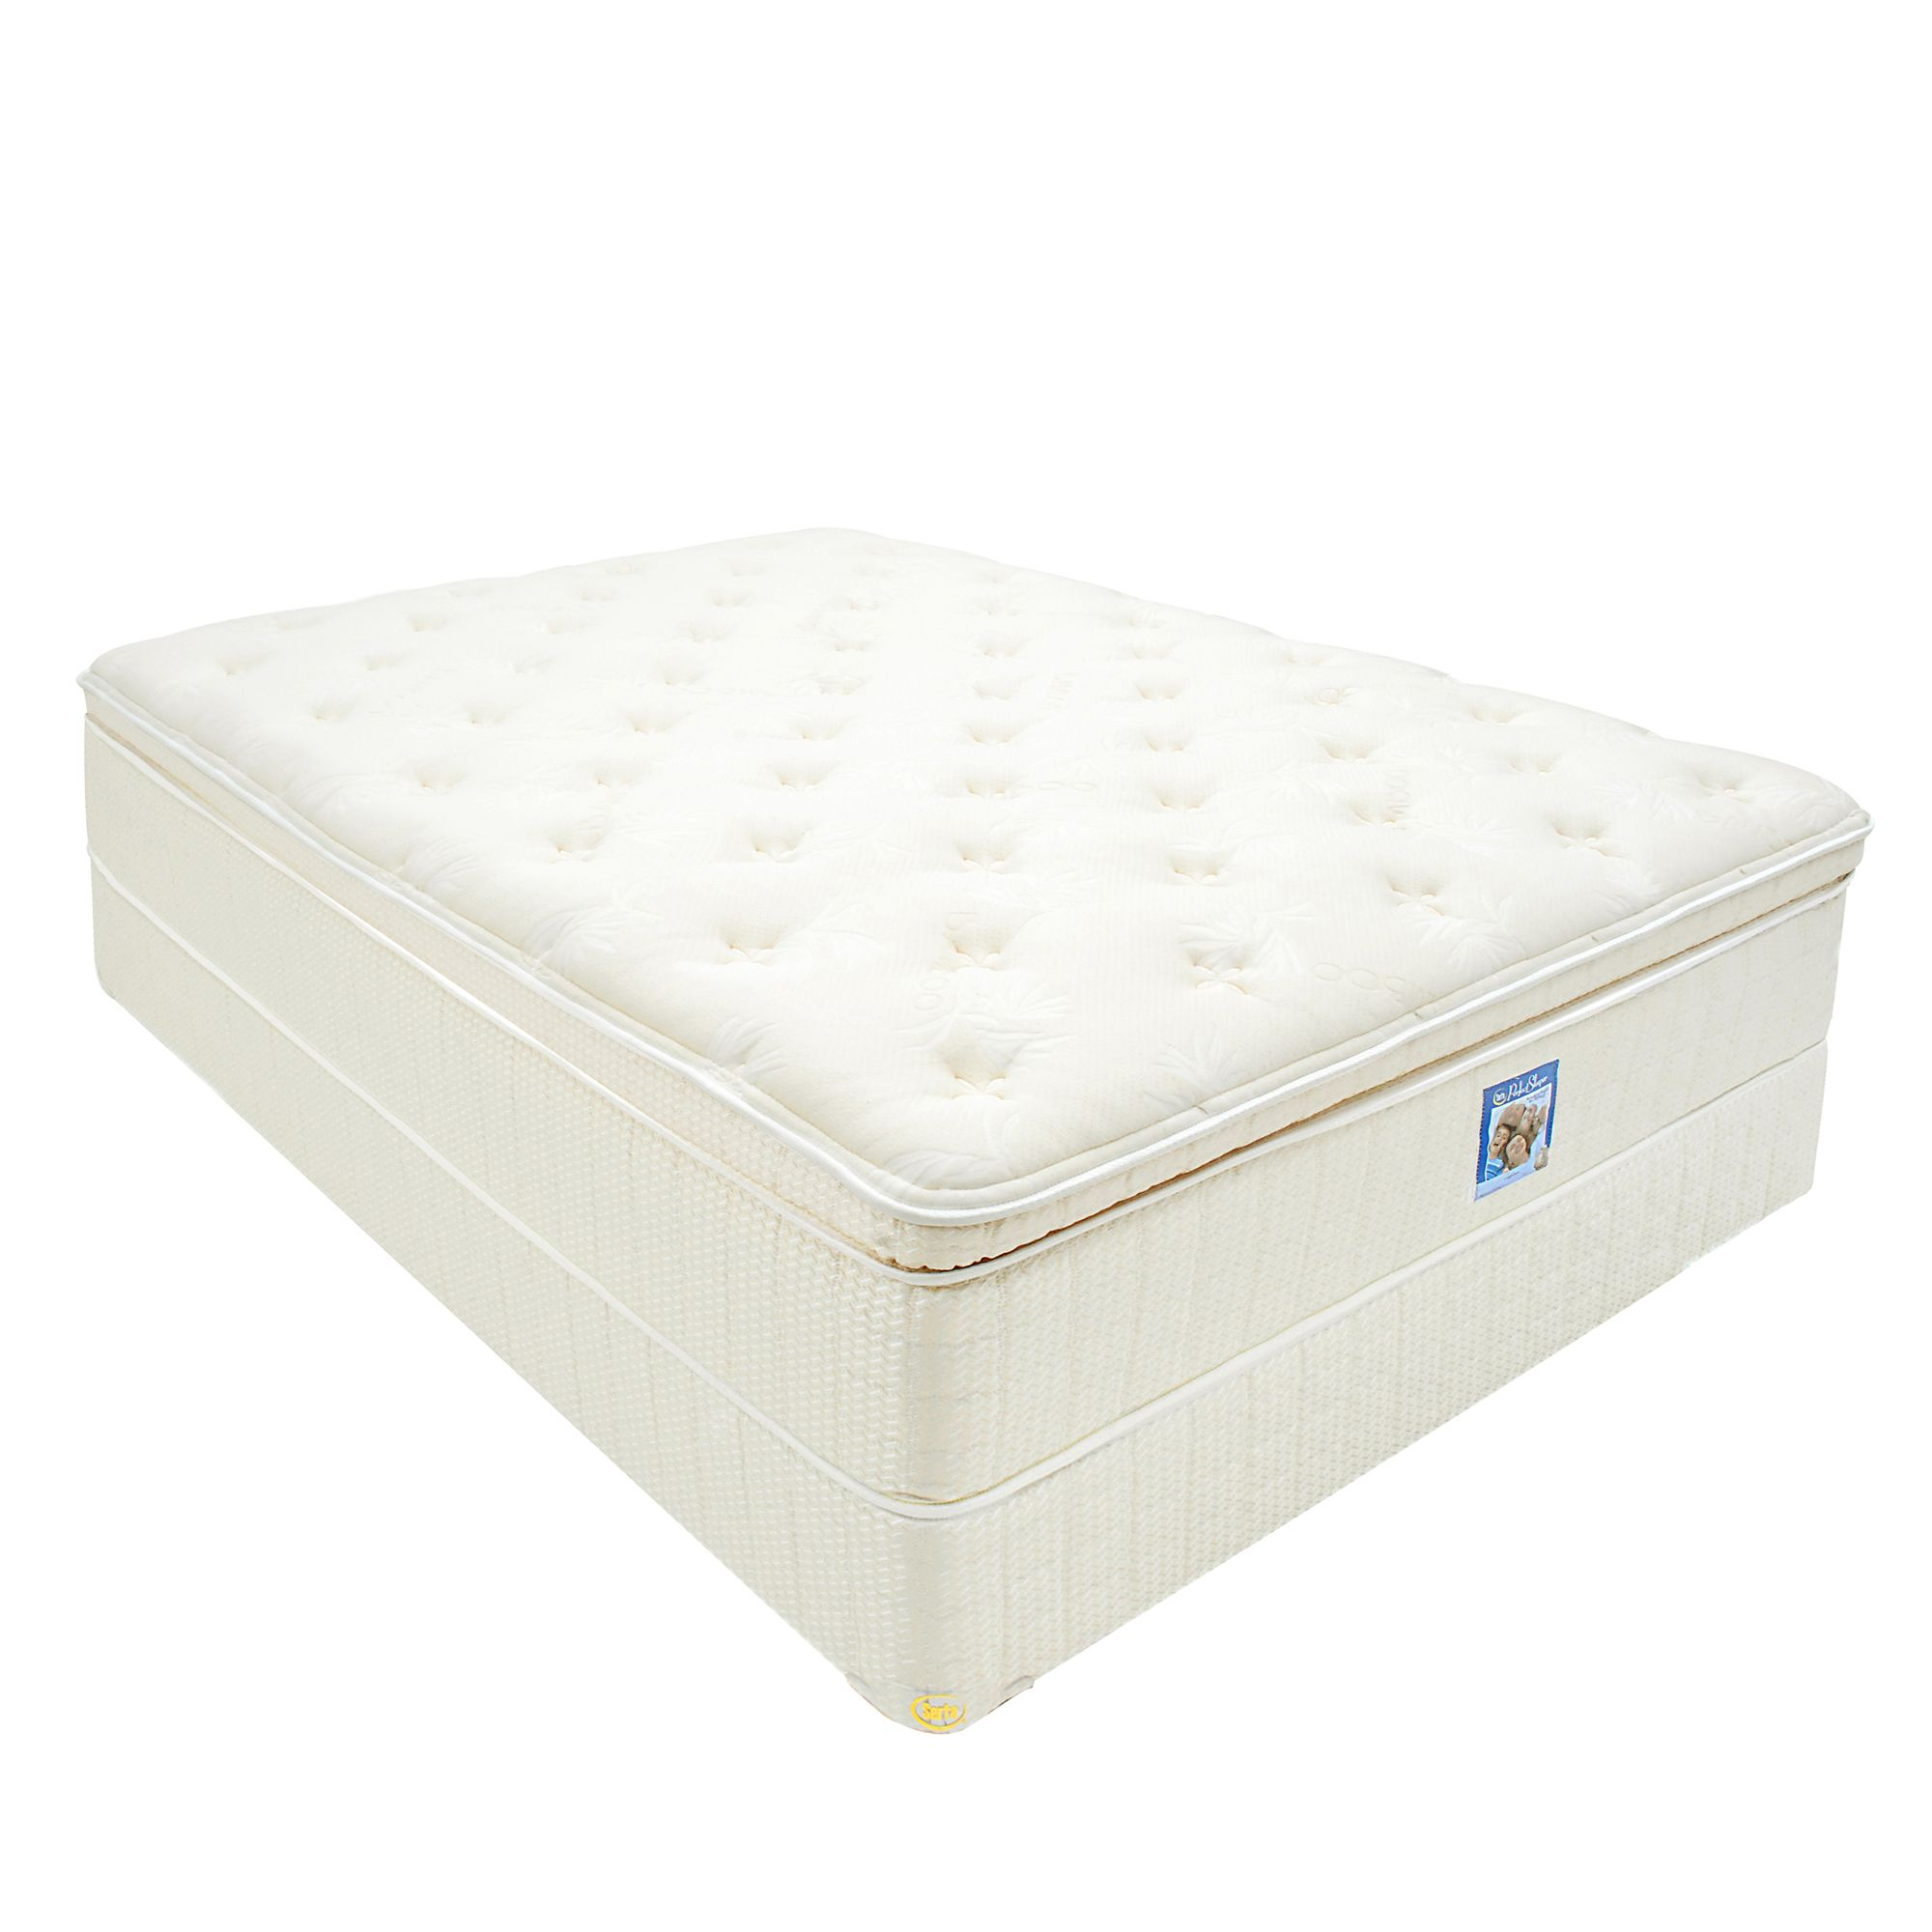 Perfect-Sleeper-Reese-Limited-Firm-II-EuroTop-Queen-Mattress